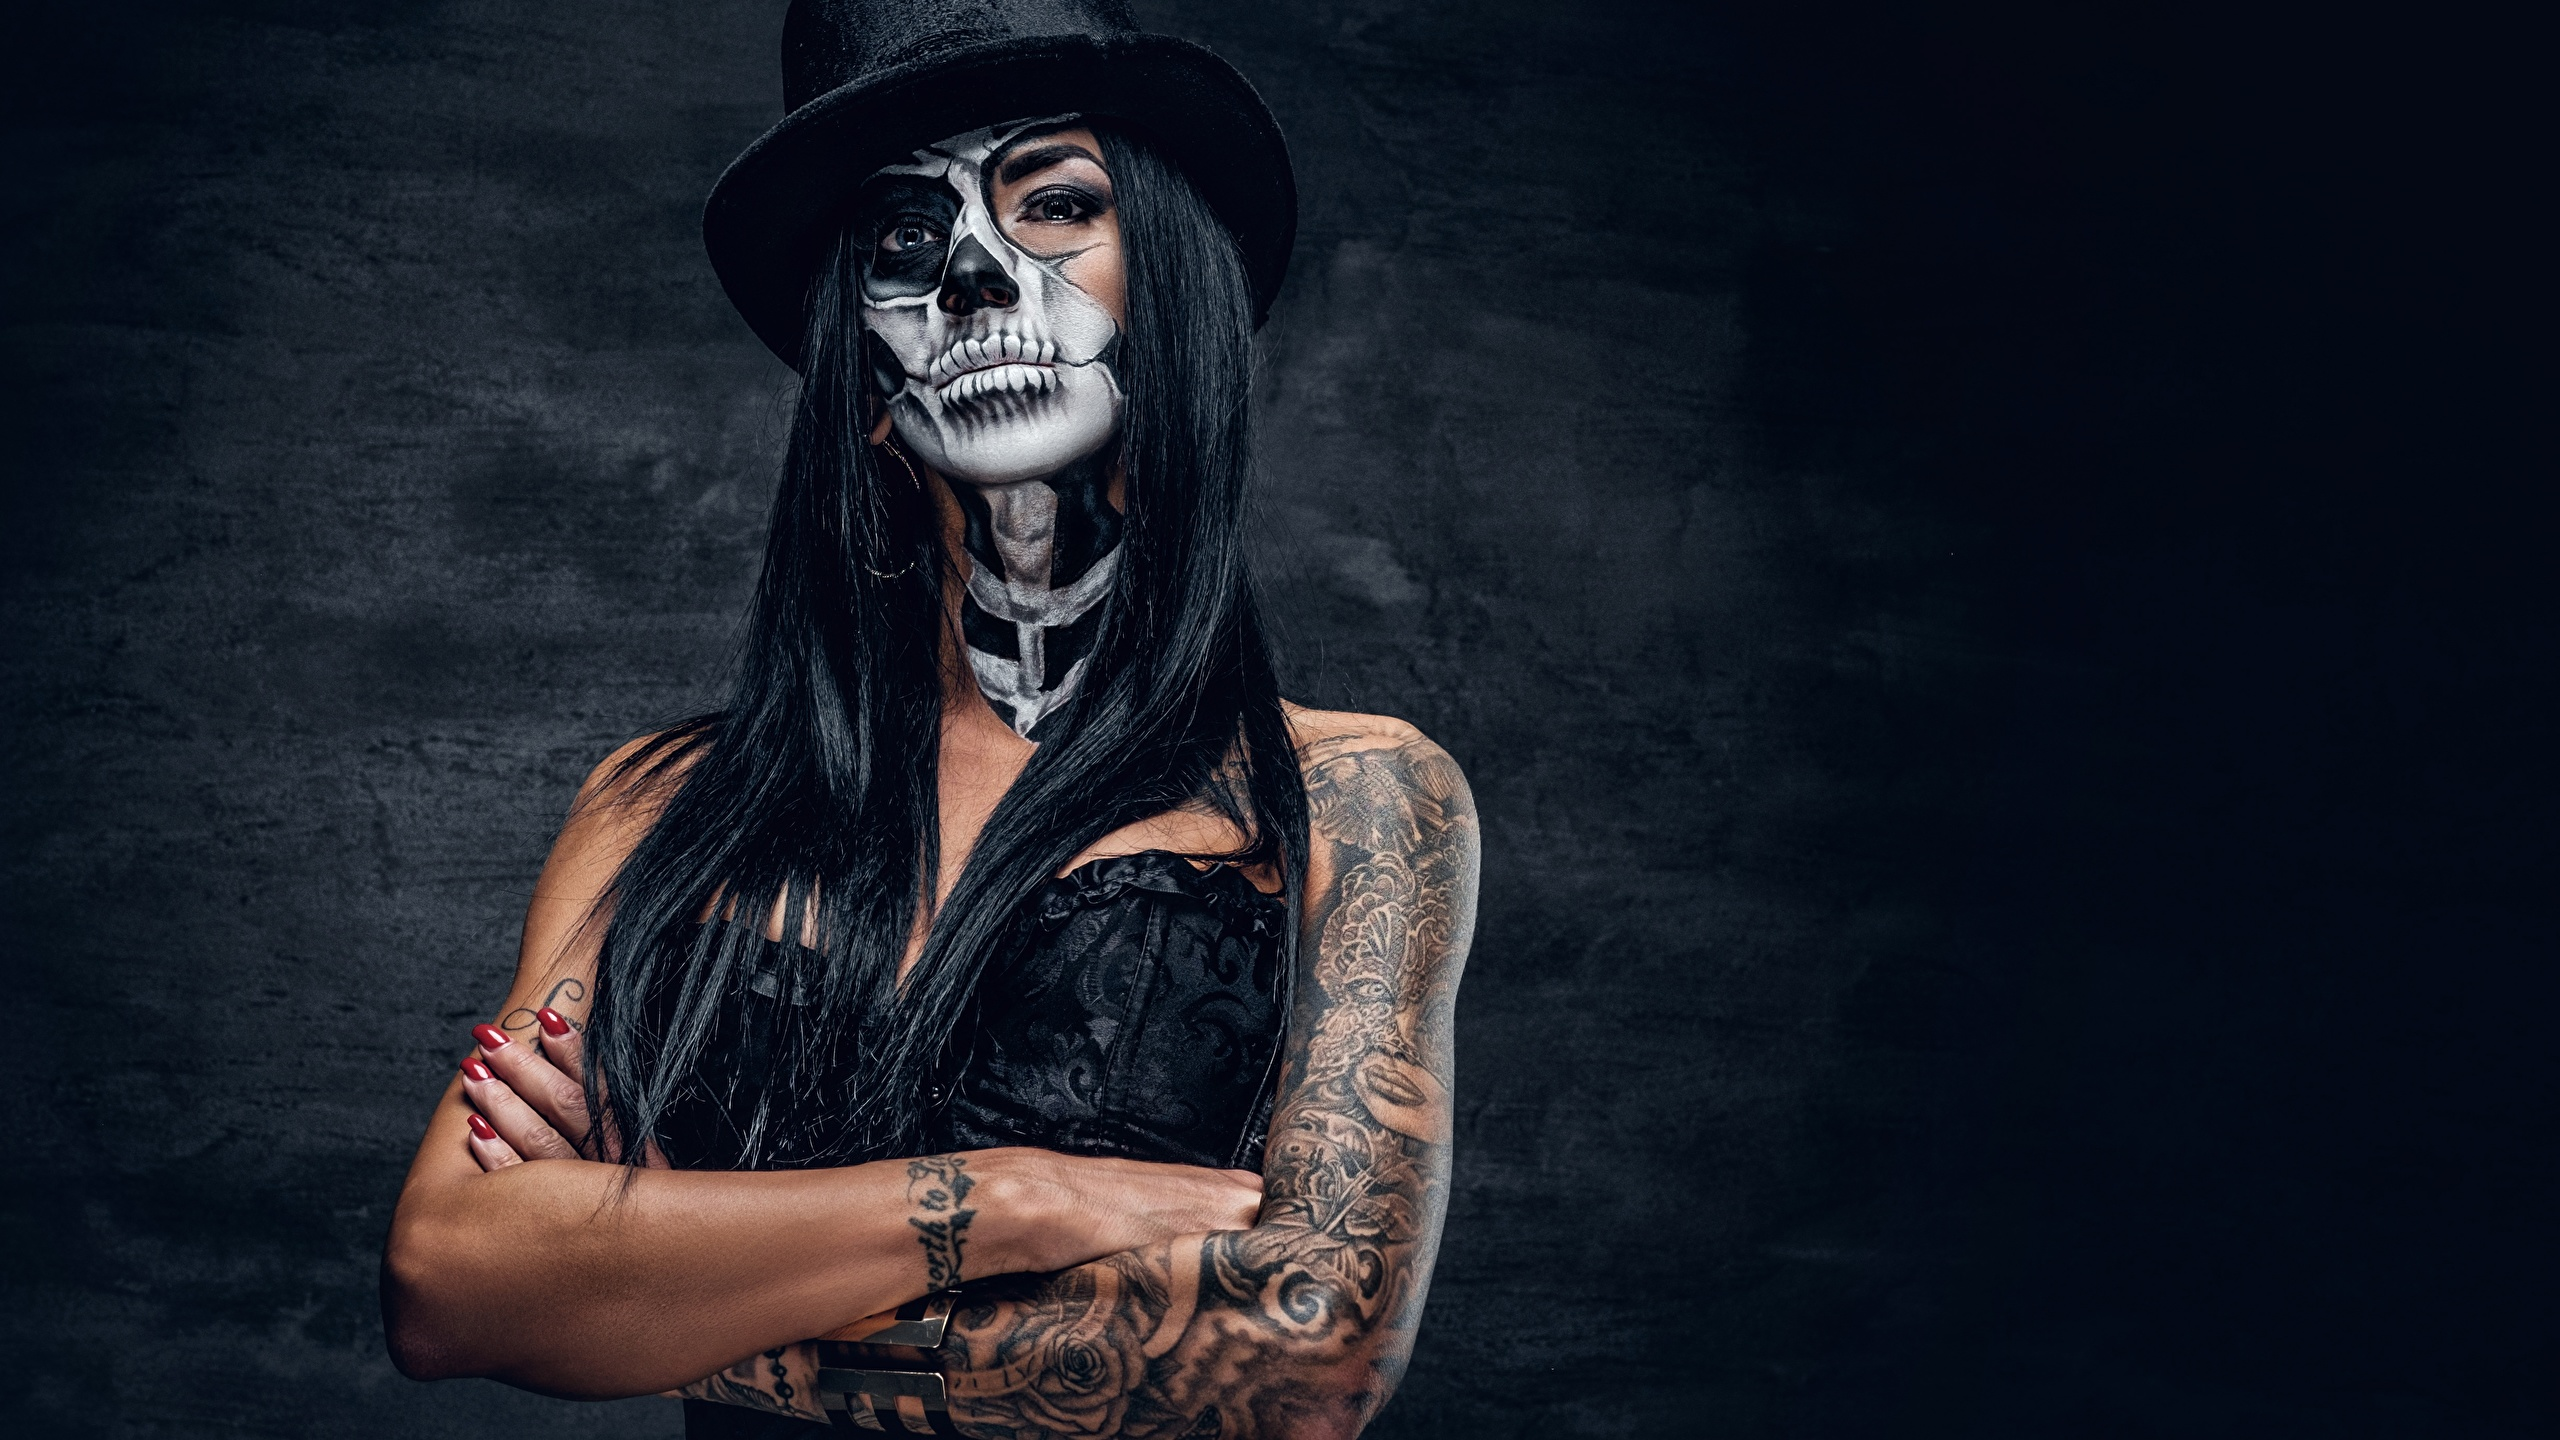 Photo Tattoos Brunette Girl Makeup Day Of The Dead Hat 2560x1440